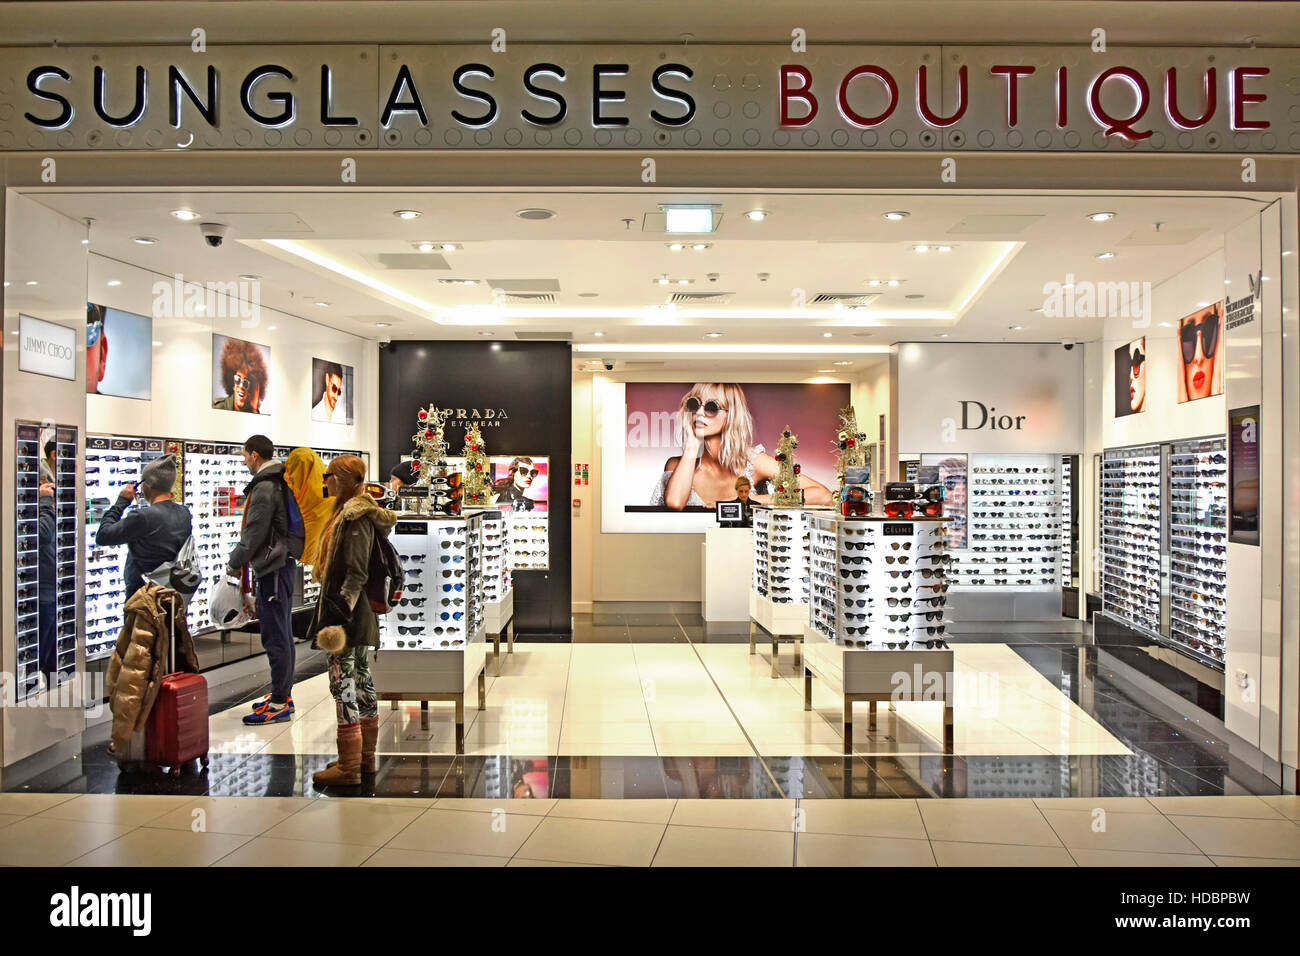 0a8312ee7b15 Stansted Airport London travellers shopping Sunglasses Boutique adjacent to  departure lounges interior of airport - Stock